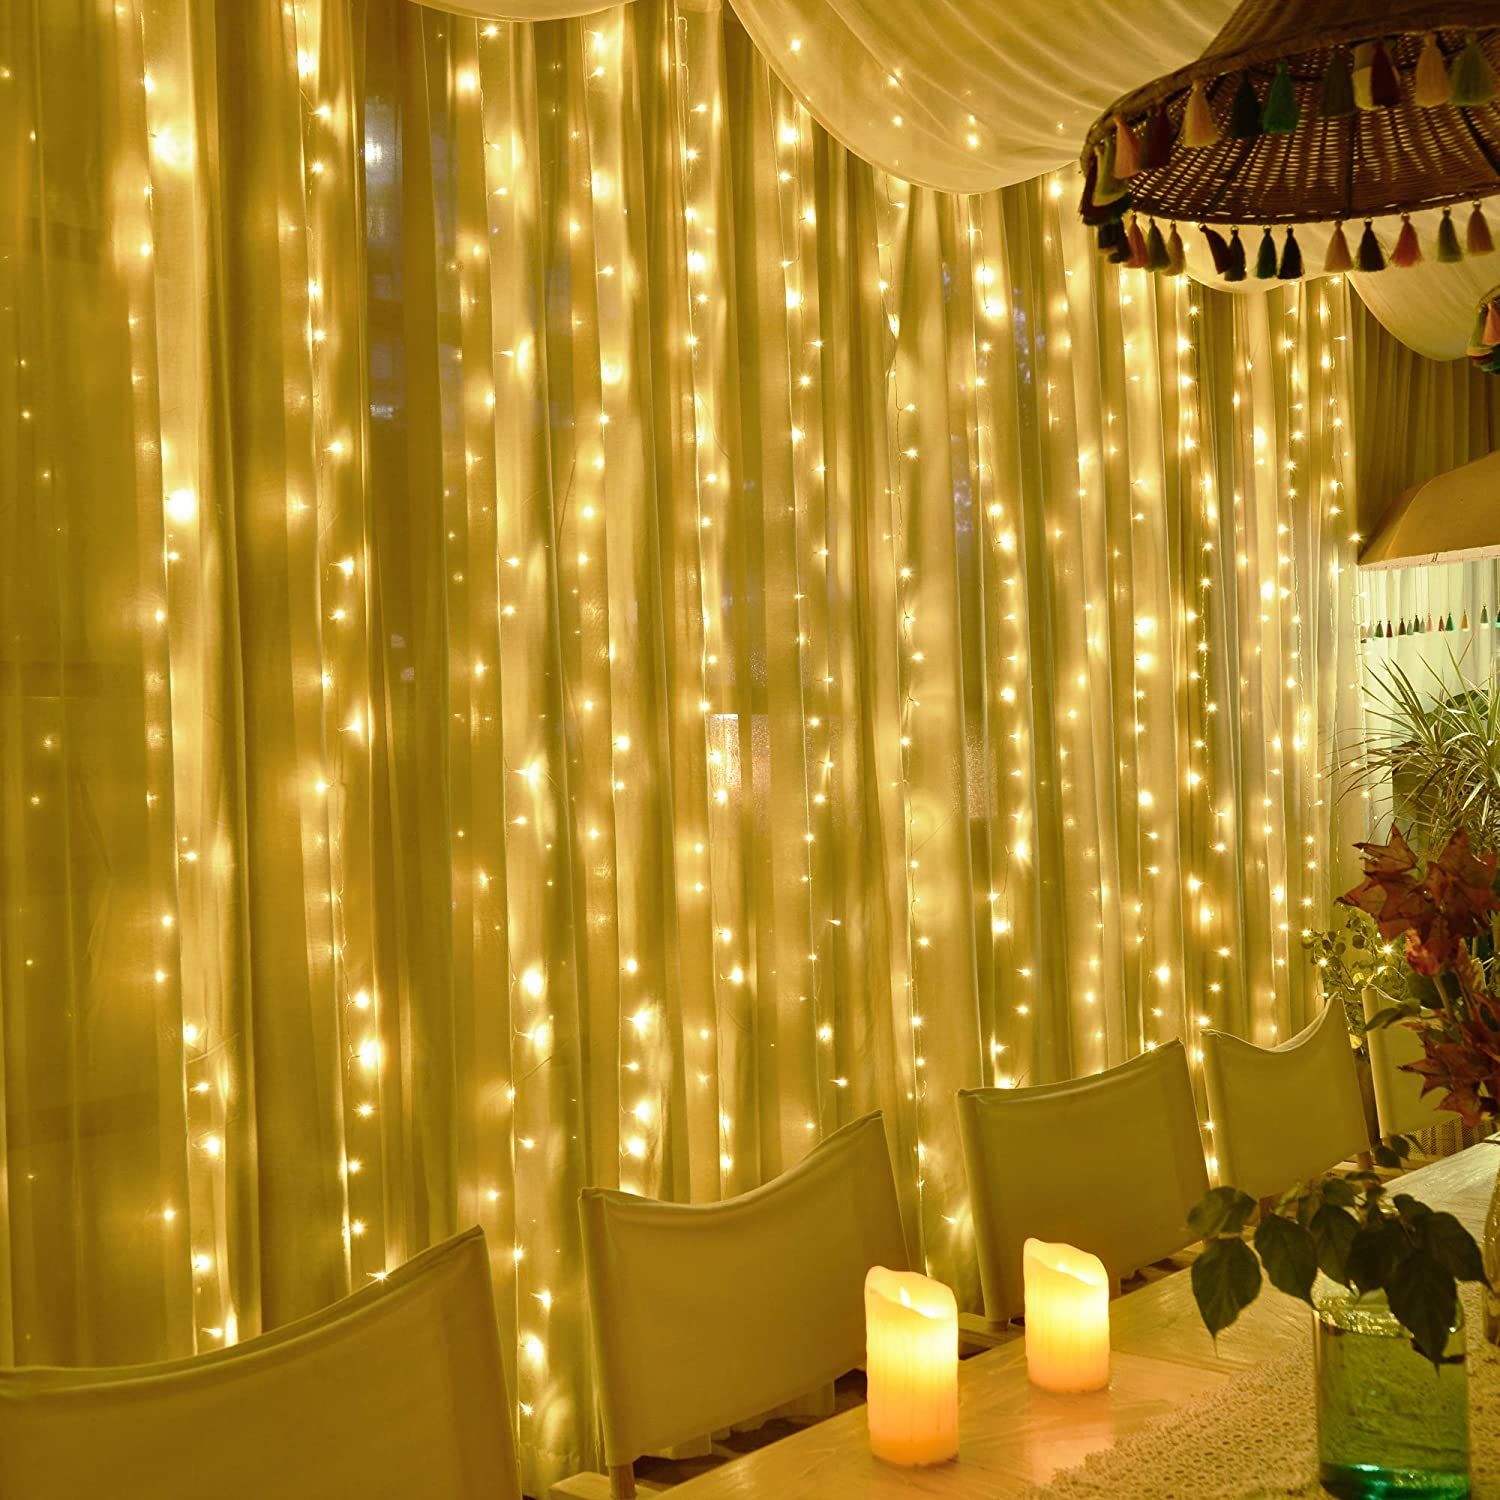 KNONEW Curtain String Lights 300 LED 9.84ft x 9.84ft, LED Fairy String Window Light for Christmas Wedding Birthday Party Backdrop Bedroom Wall Window Indoor Outdoor Decoration (Warm White)